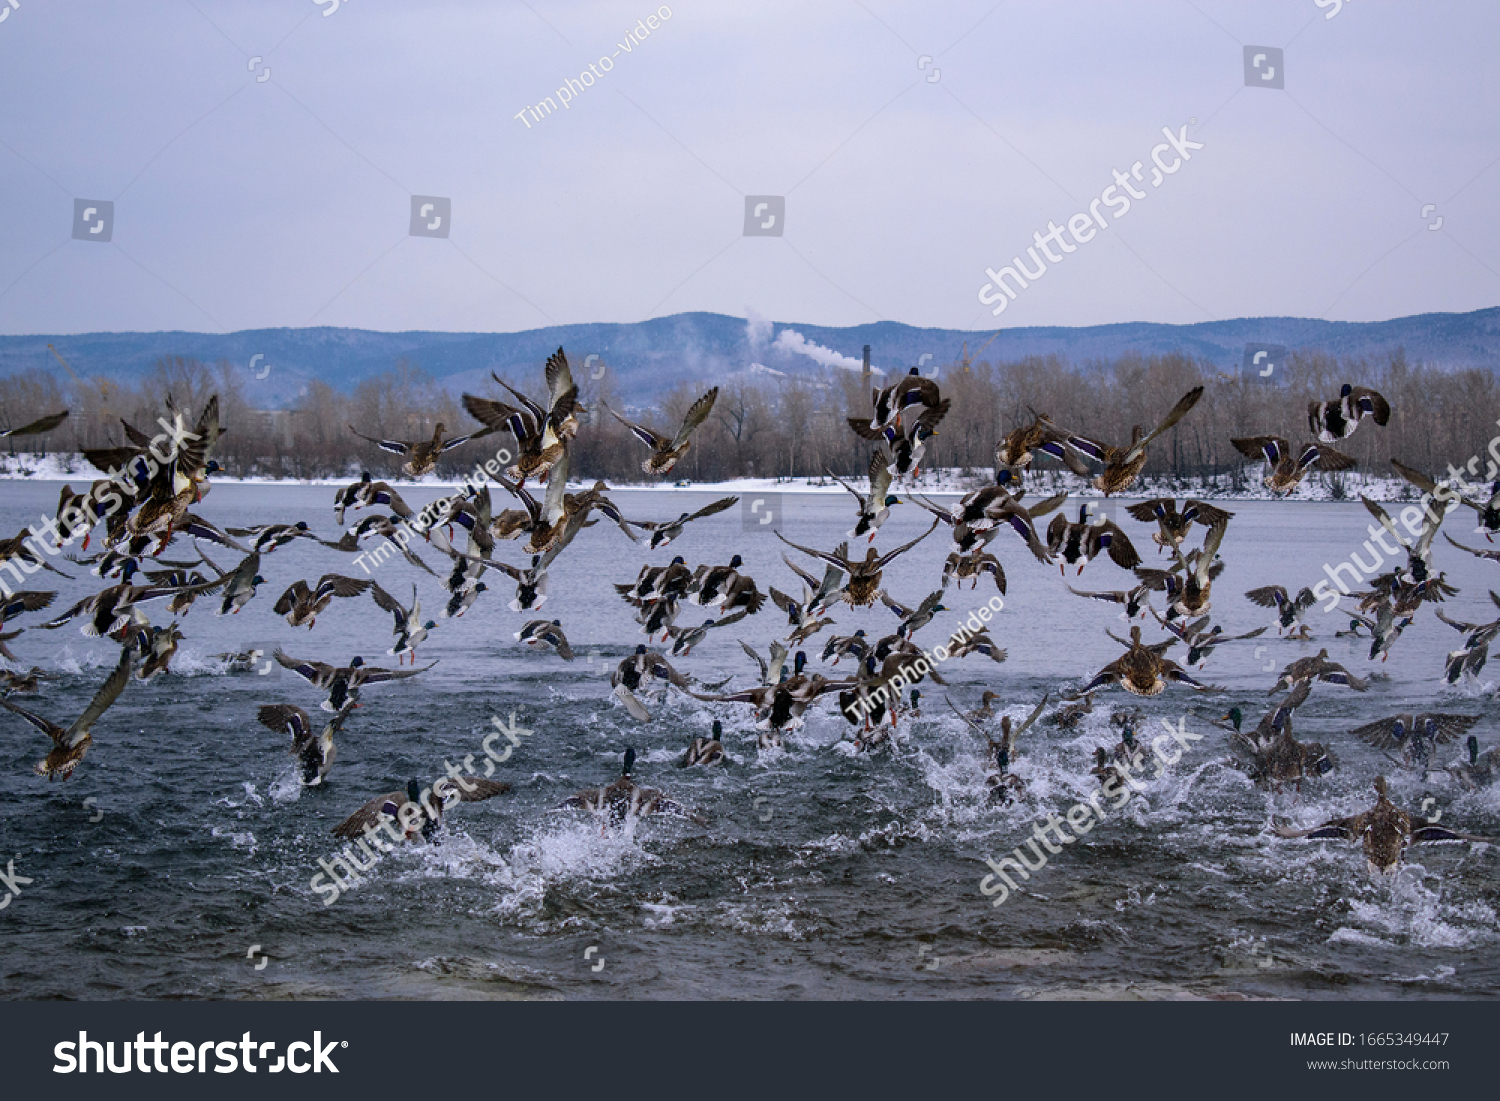 stock-photo-flock-of-ducks-fly-in-flight